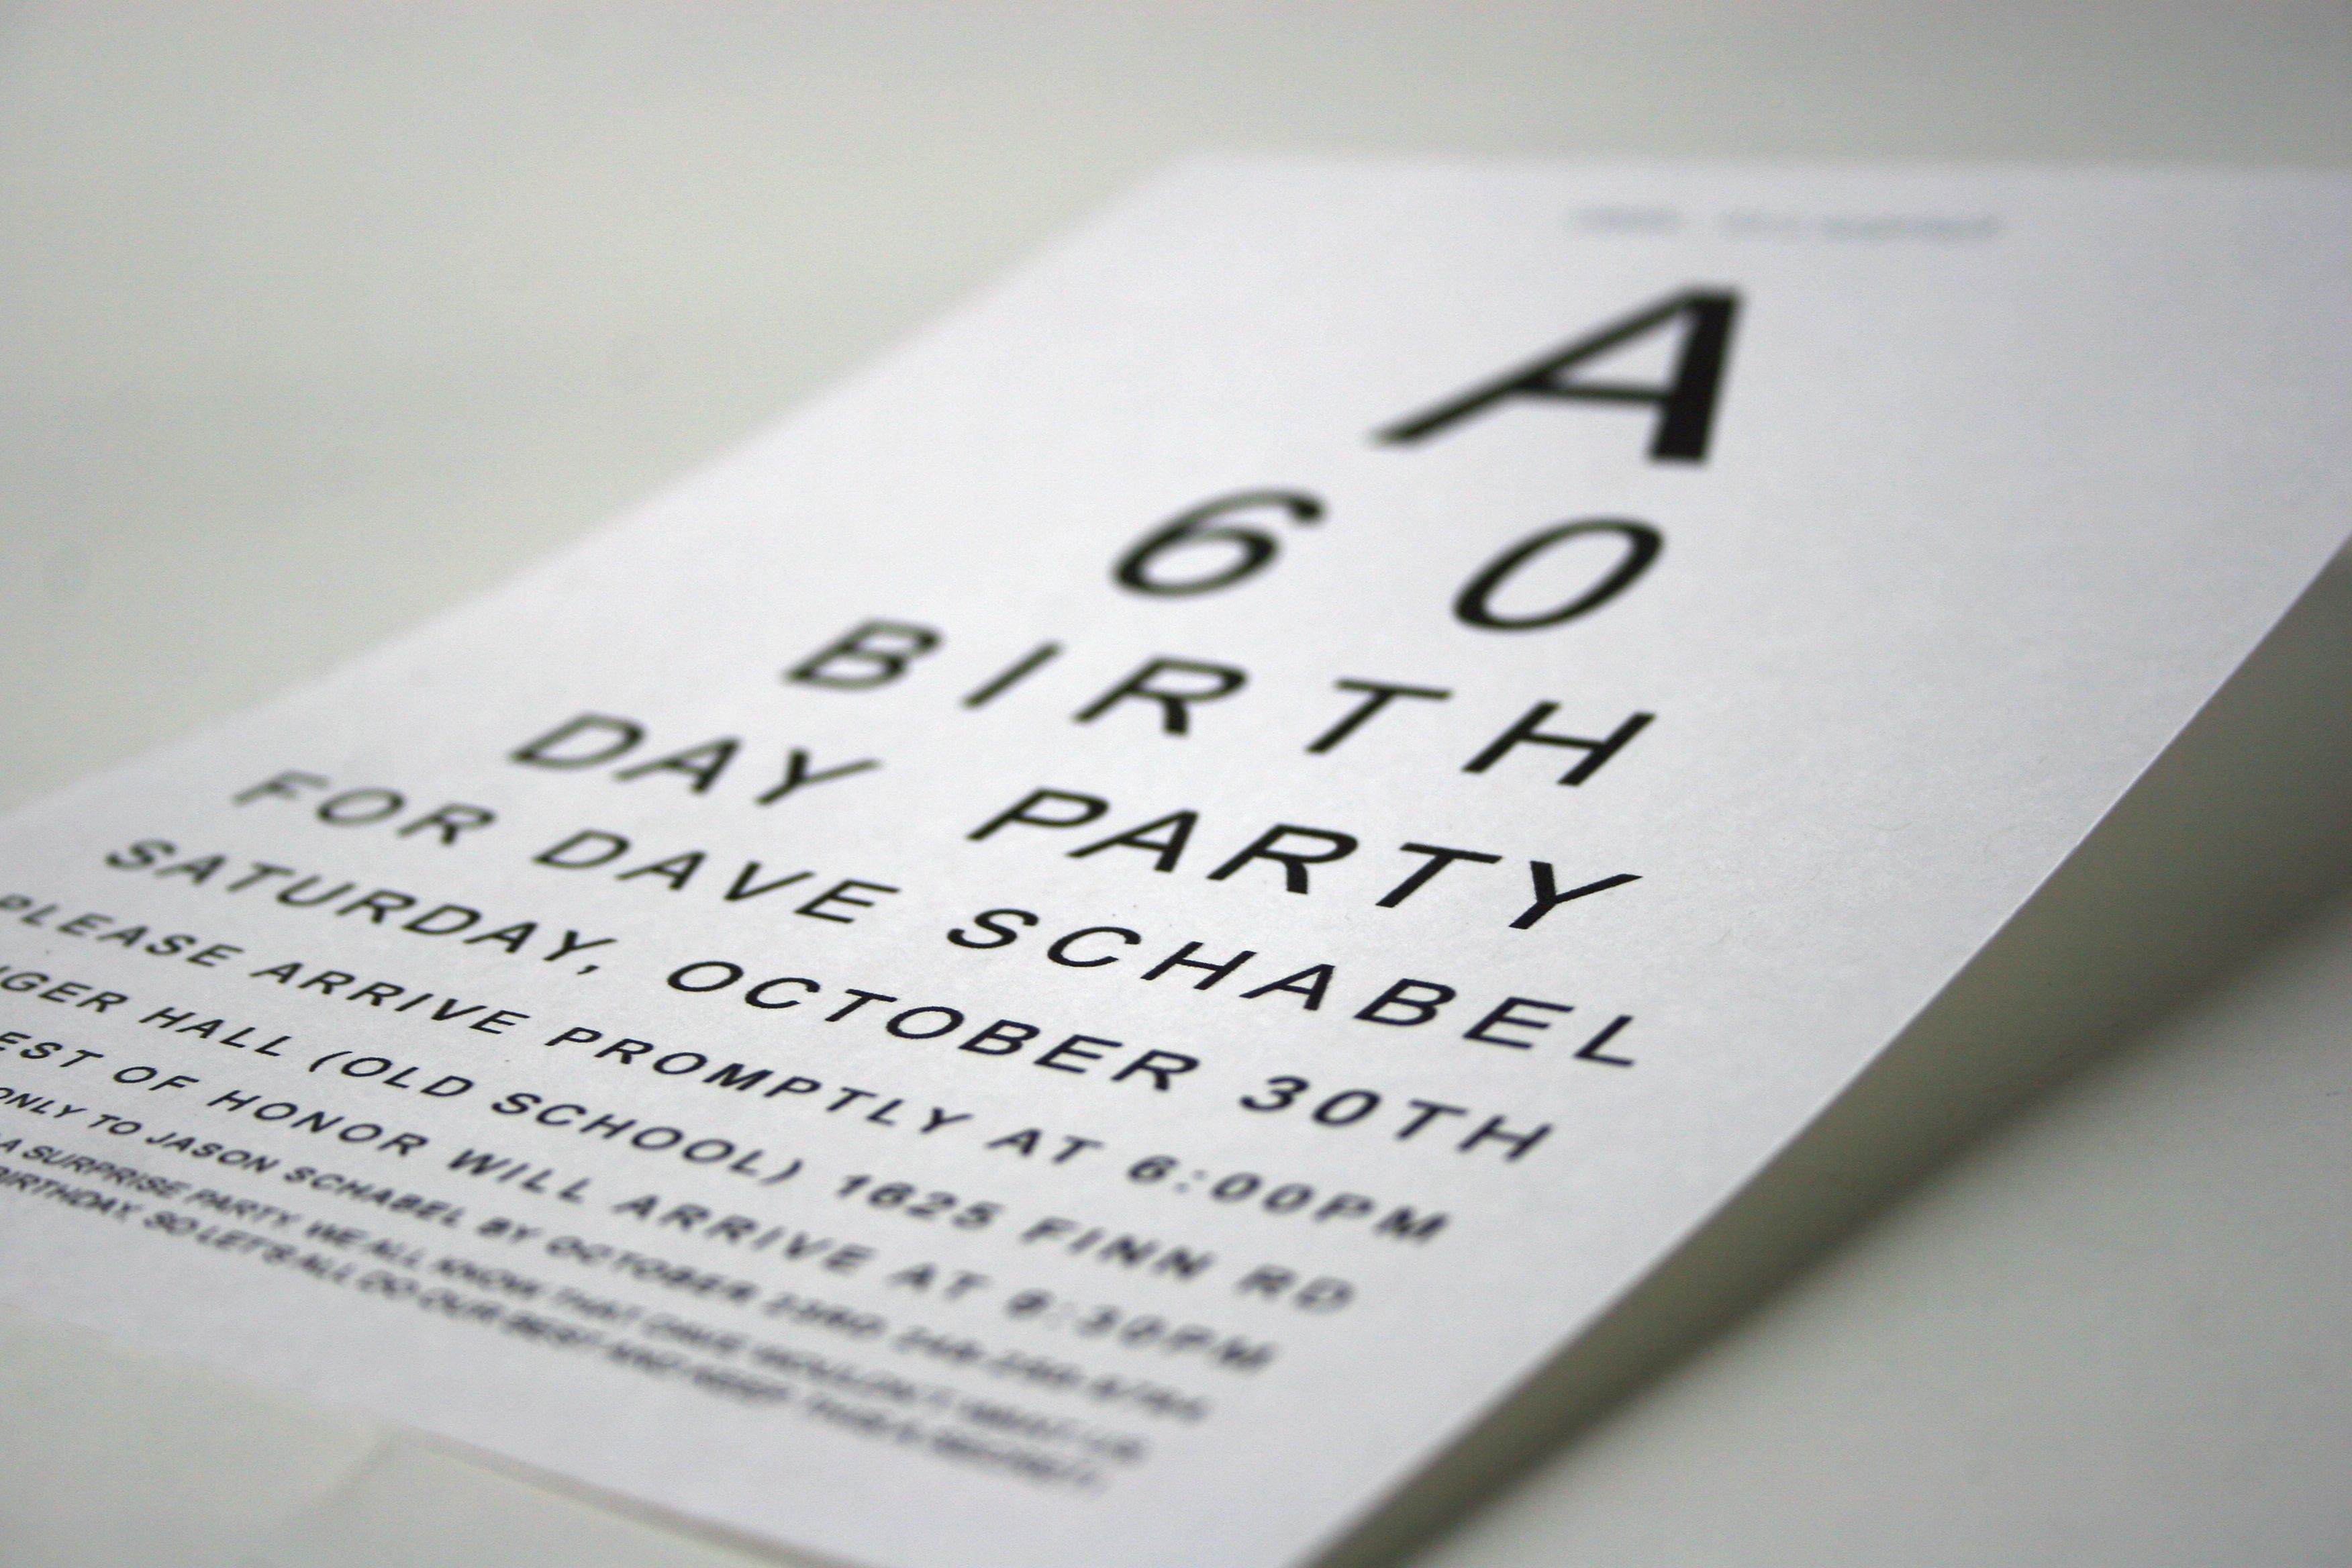 Eye chart 60th birthday party invite daddys bday pinterest eye chart 60th birthday party invite solutioingenieria Images